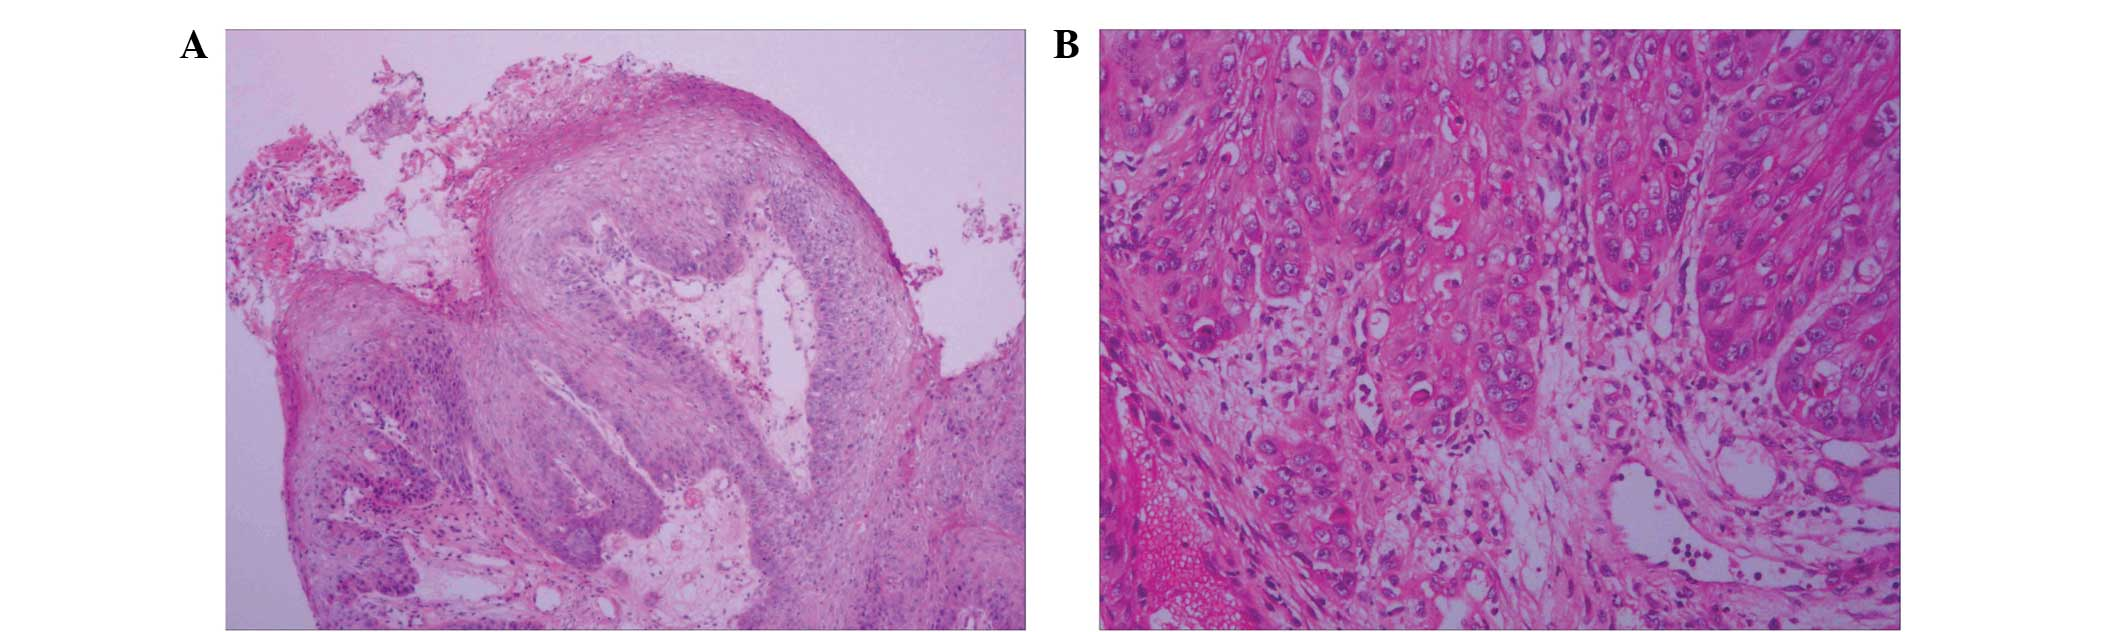 HUMAN PAPILLOMA VIRUS GENOTYPING IN FRESH HEAD AND NECK TUMORS - OUR FIRST EXPERIENCE